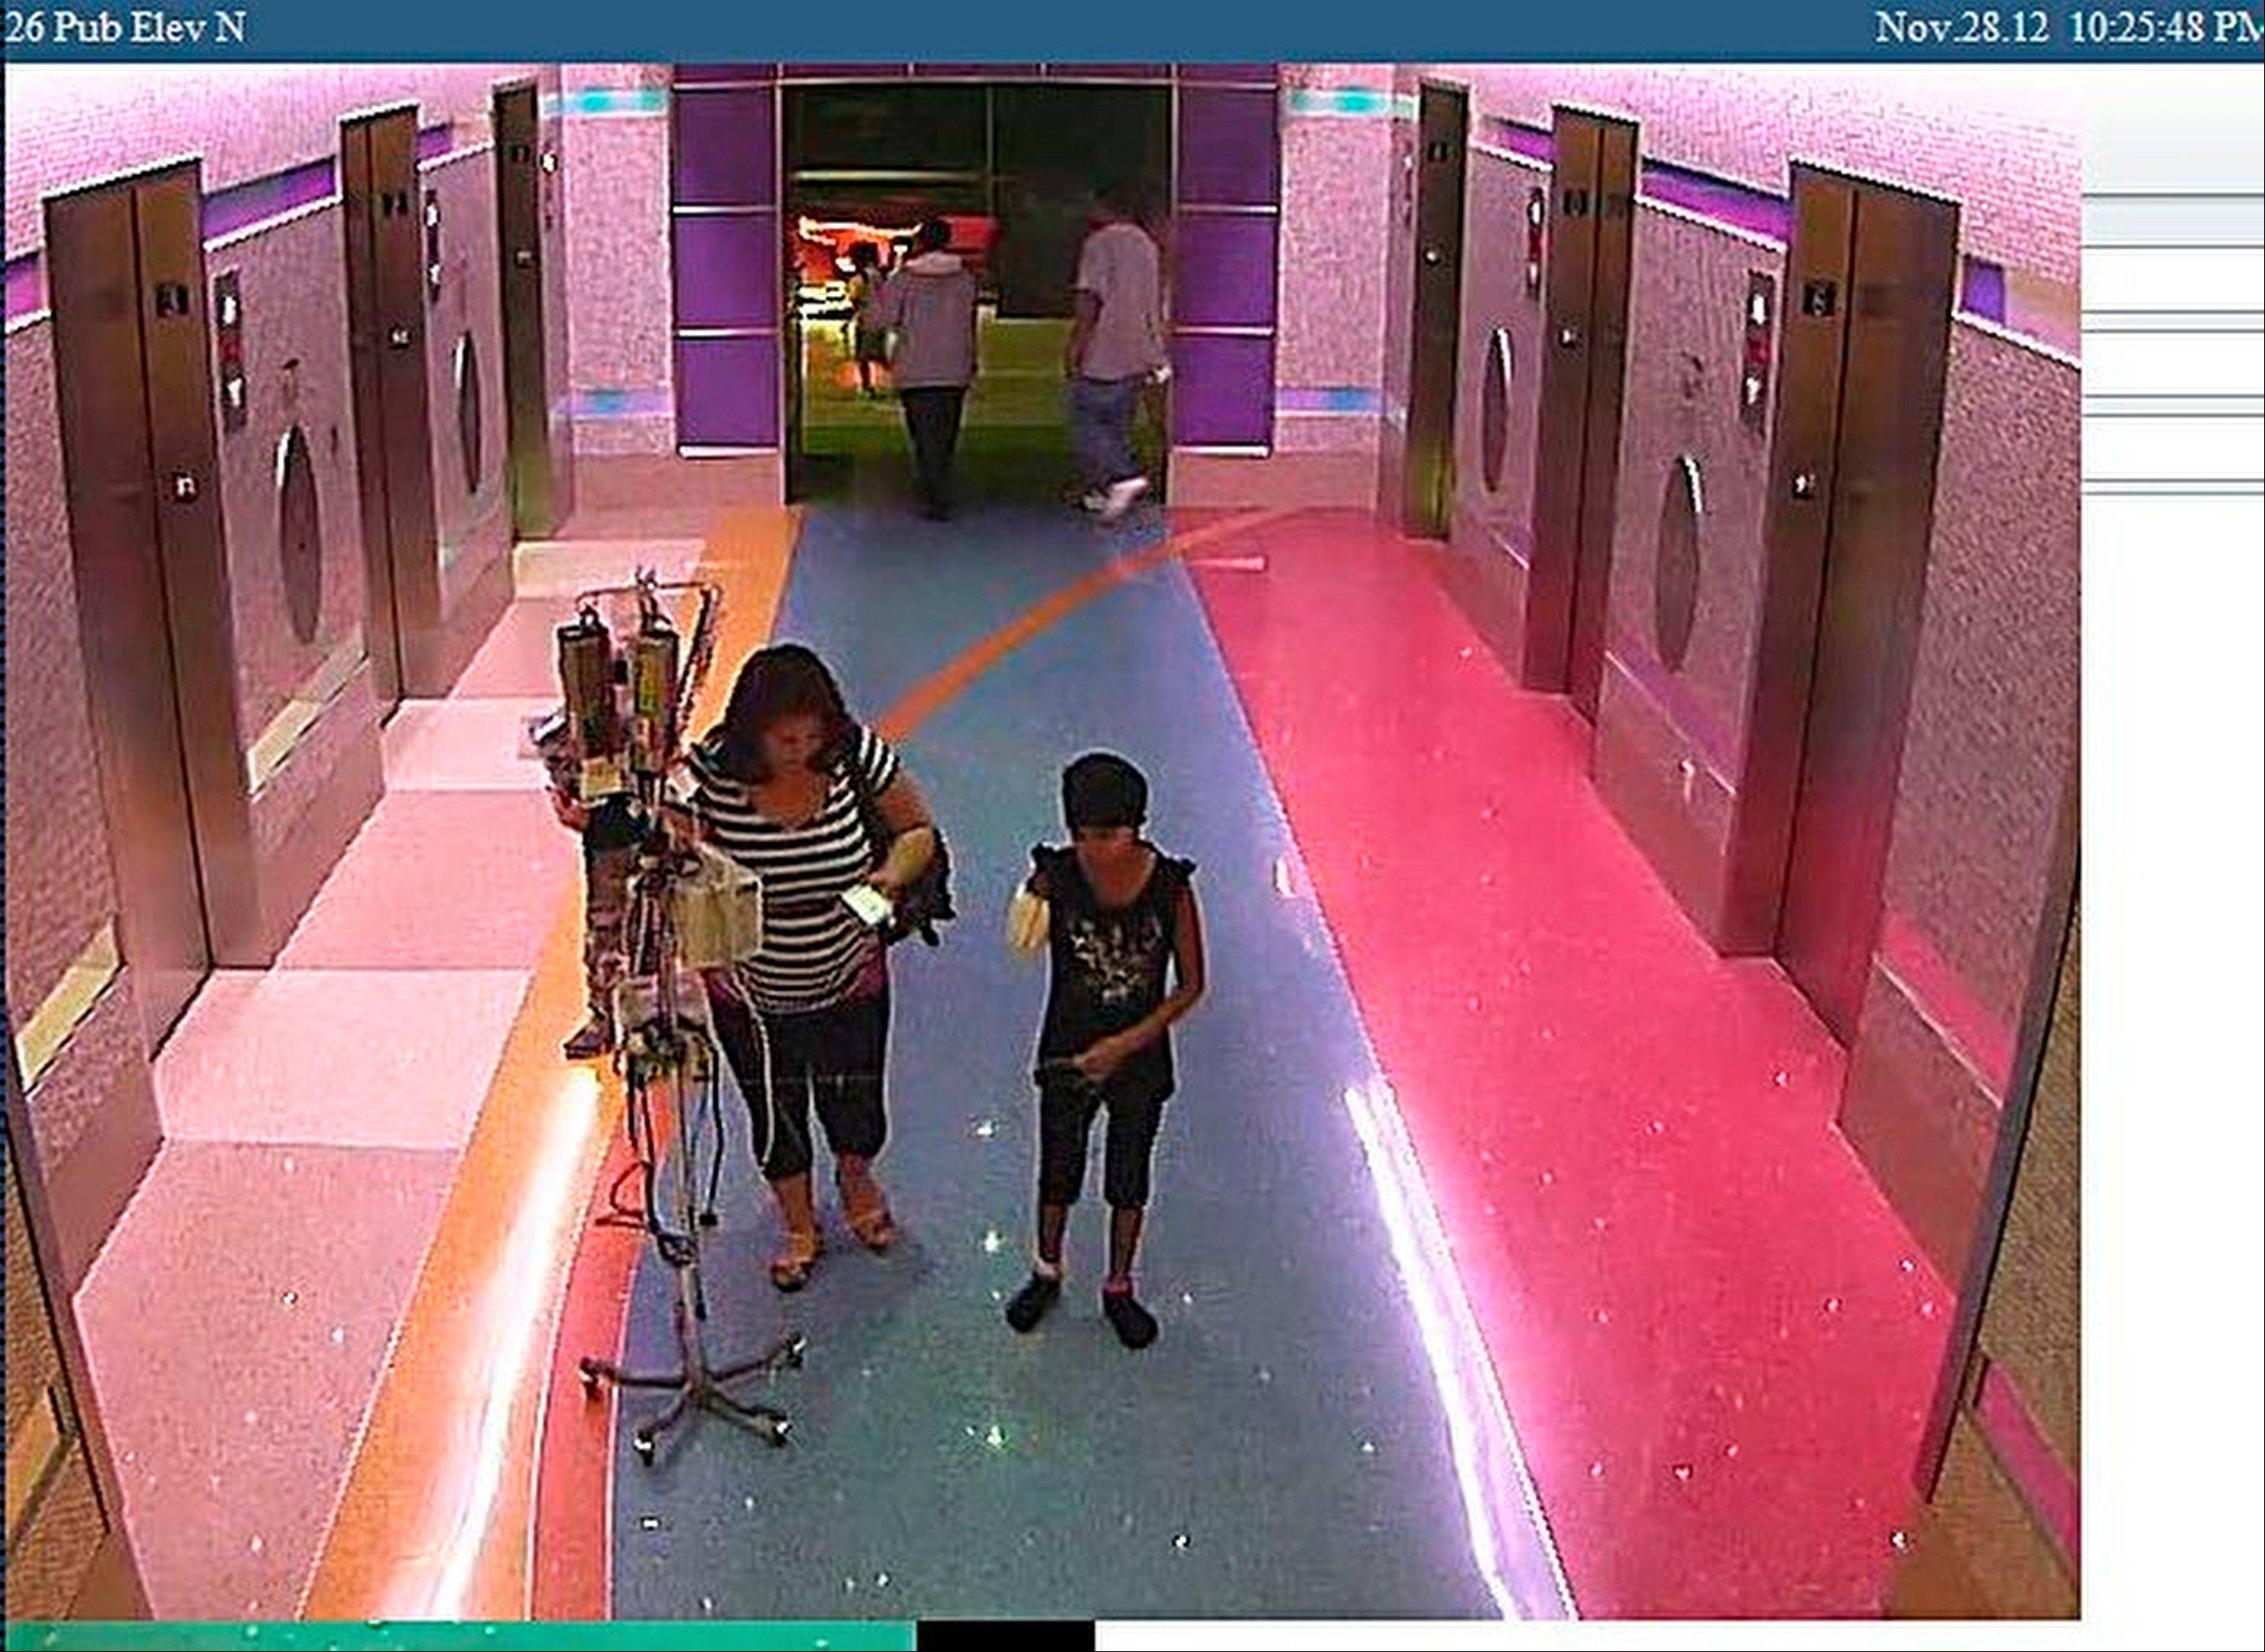 In this hospital surveillance photo released Monday by the Phoenix Police Department, a woman is seen with her 11-year-old daughter, a leukemia patient who had her arm amputated and a heart catheter inserted due to an infection. Authorities say the woman inexplicably took the girl from the hospital last week. Police say that if the catheter is left in too long it could lead to a deadly infection. The family�s identity is being withheld but they are calling the girl Emily.